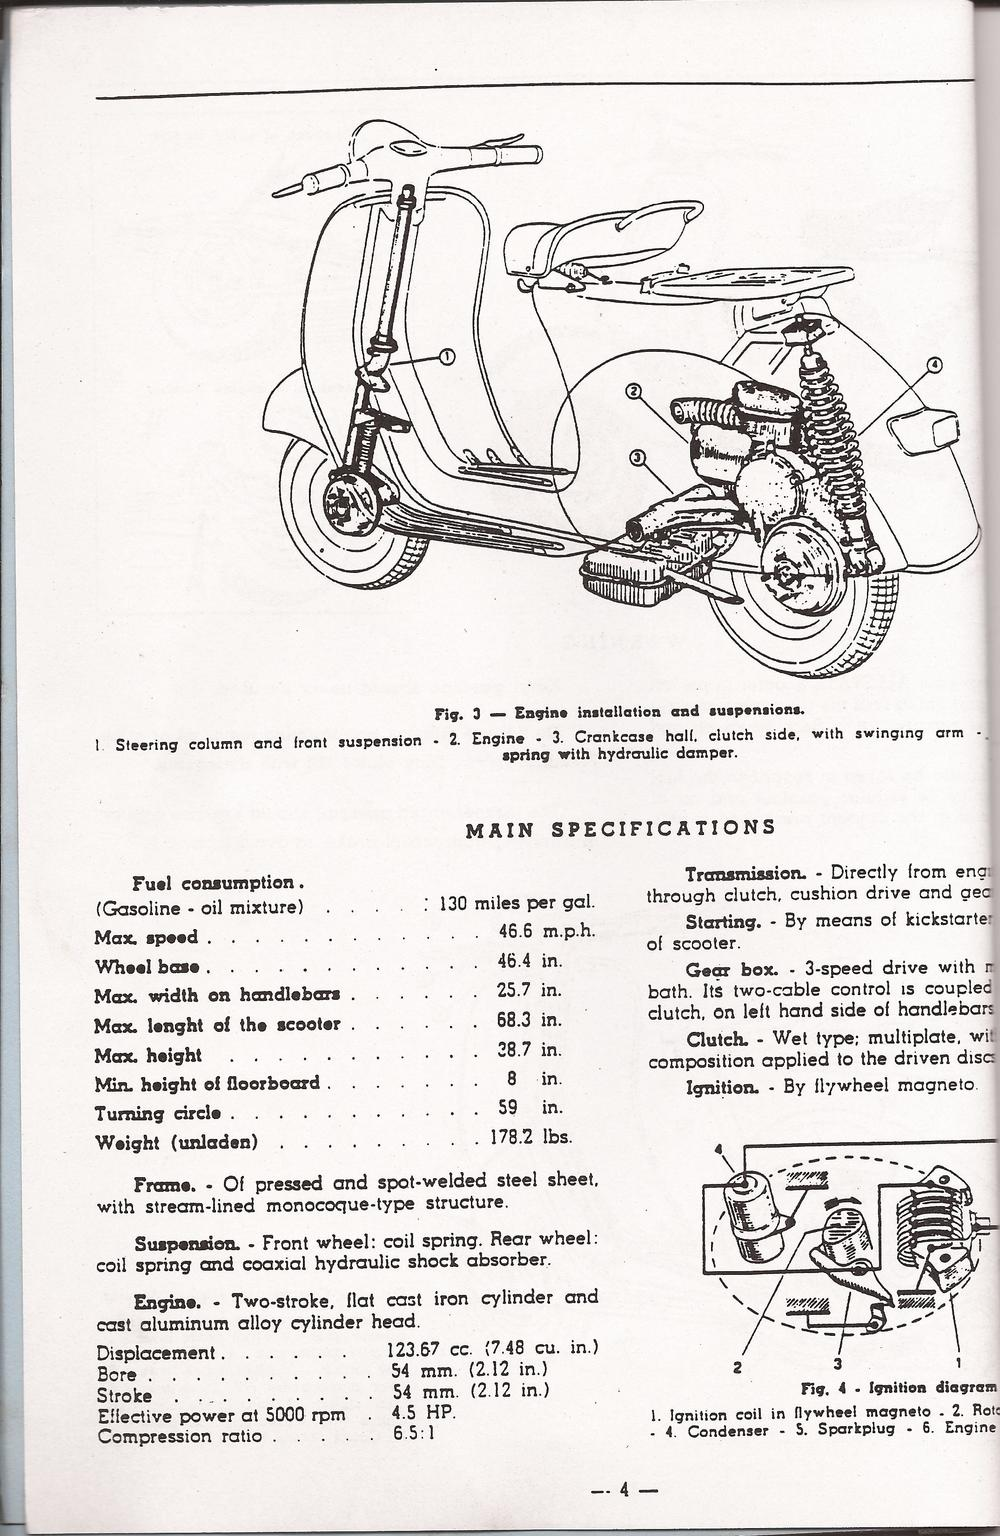 Vespa Allstate Wiring Diagram Great Engine Schematic Corsa Schema Online Rh 16 14 1 Travelmate Nz De Gt200 Only